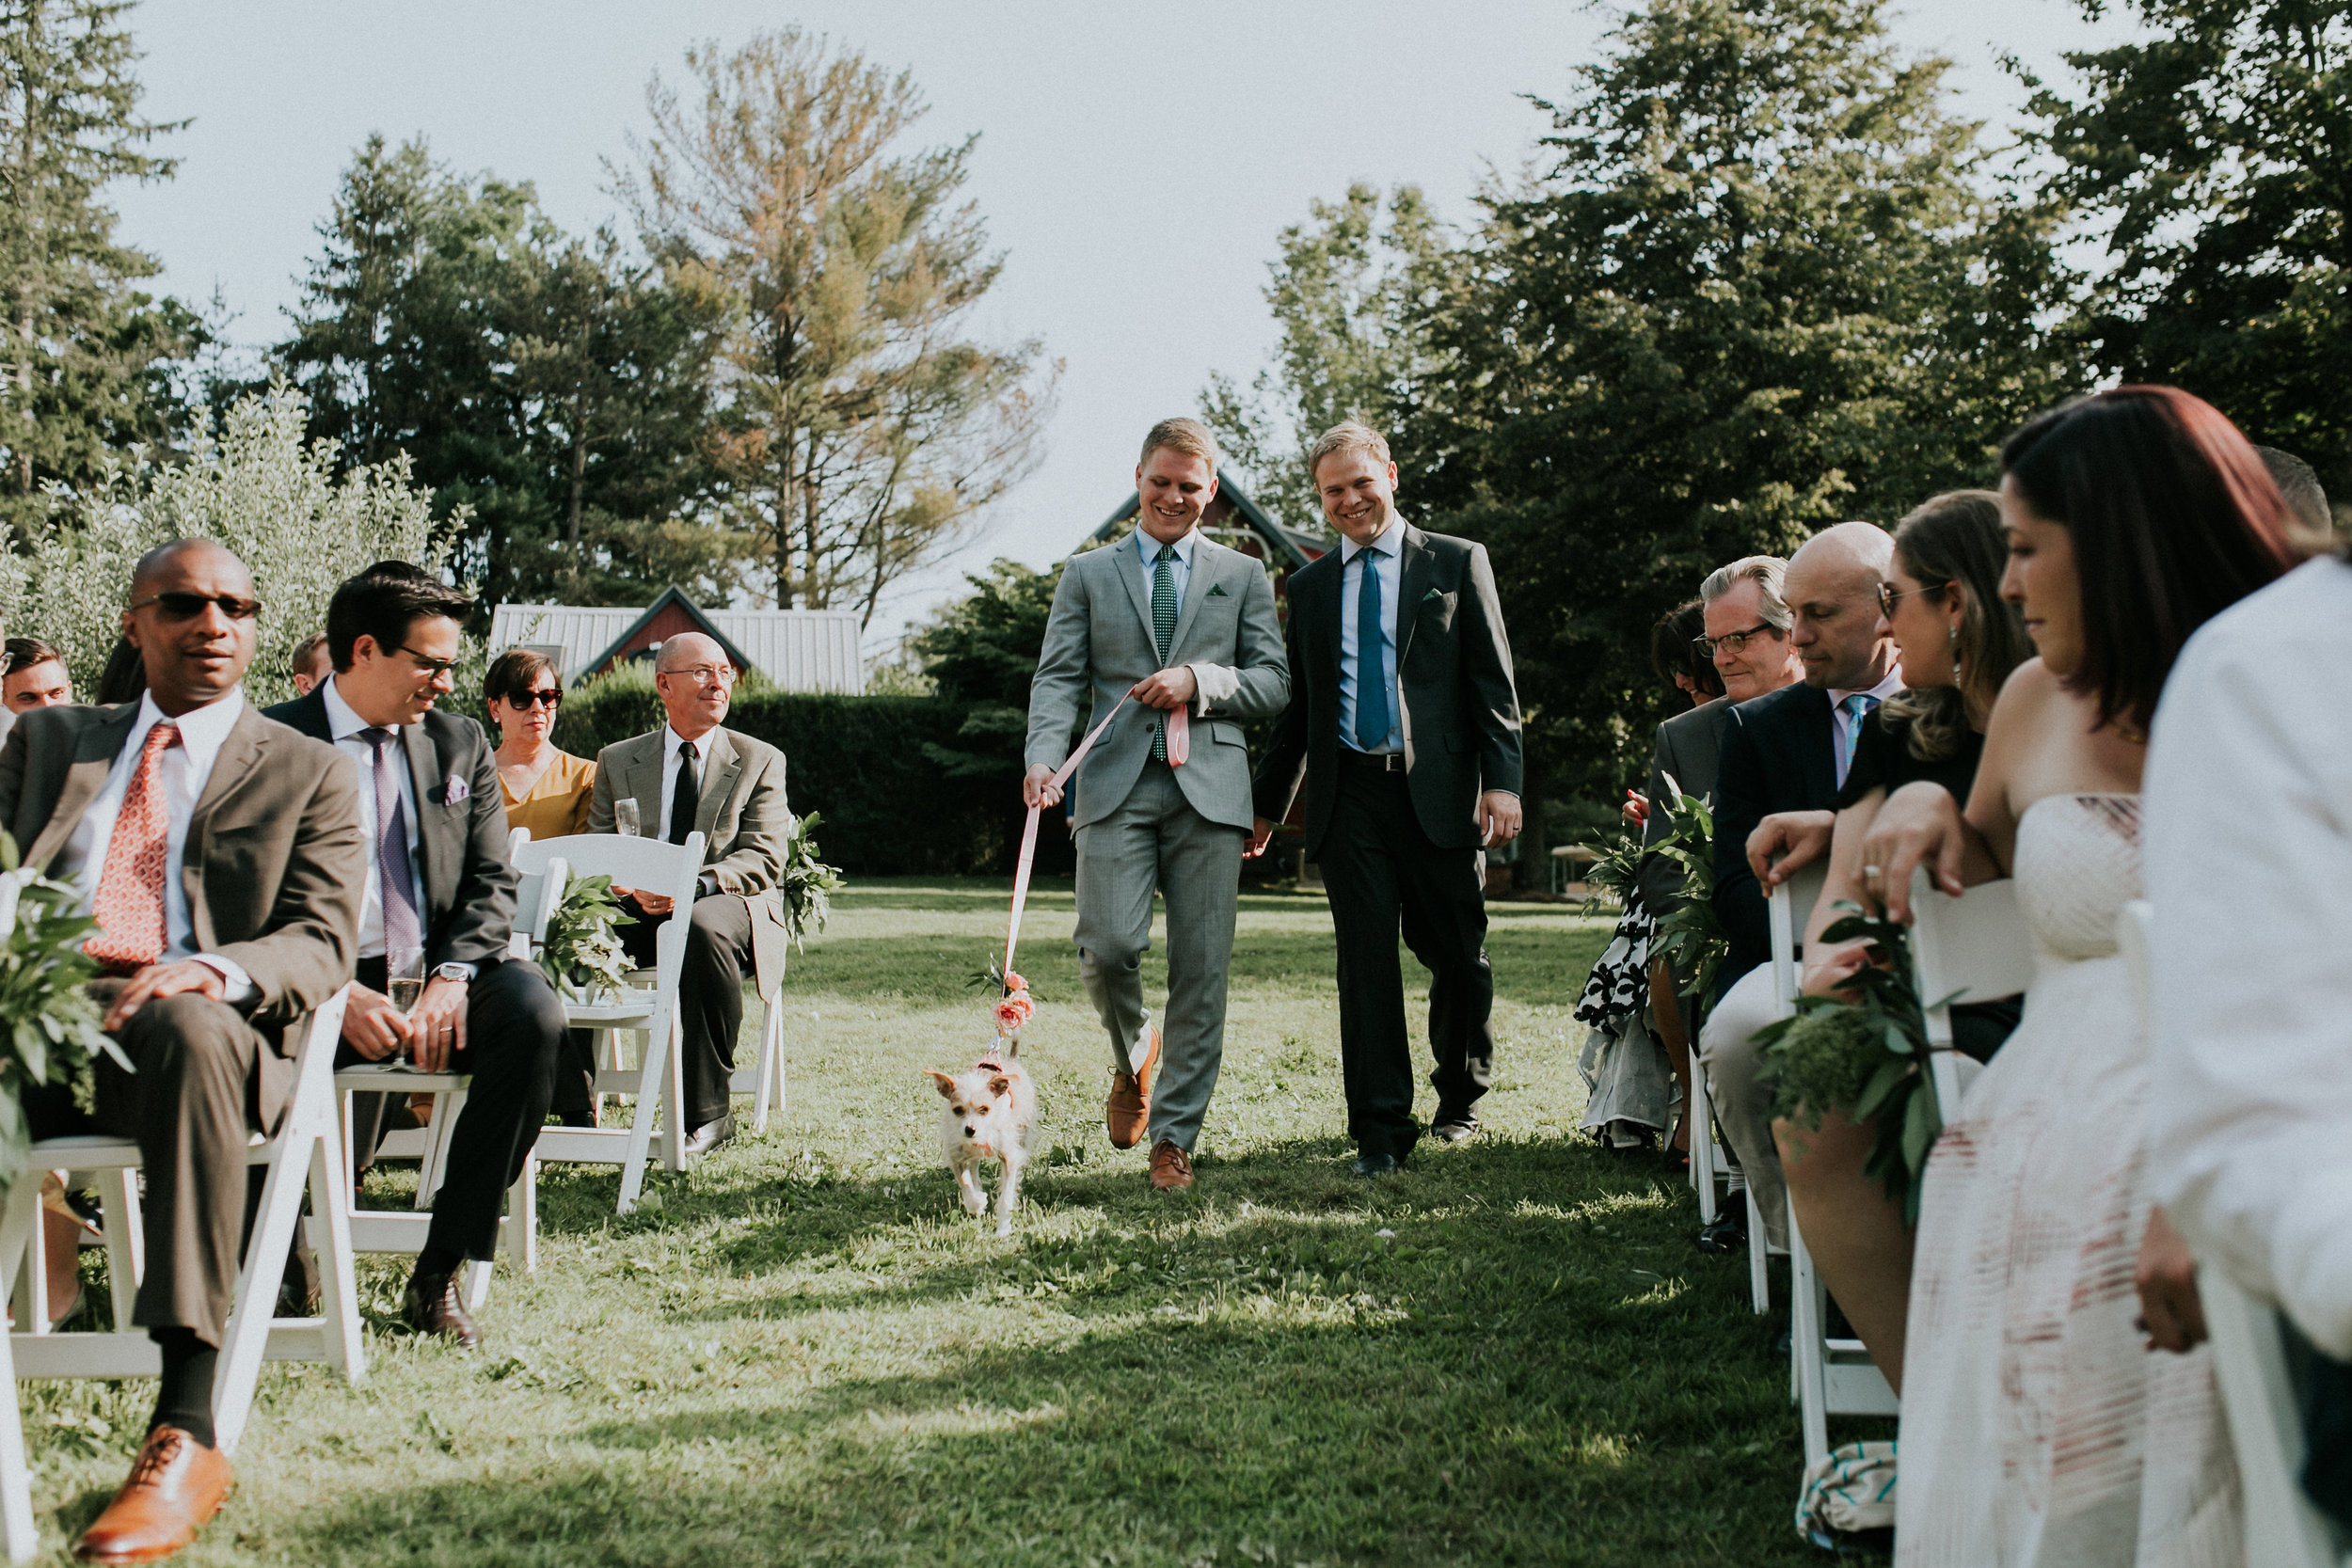 desiree hartstock - HERE'S HOW TO INCLUDE YOUR DOG ON YOUR WEDDING DAY